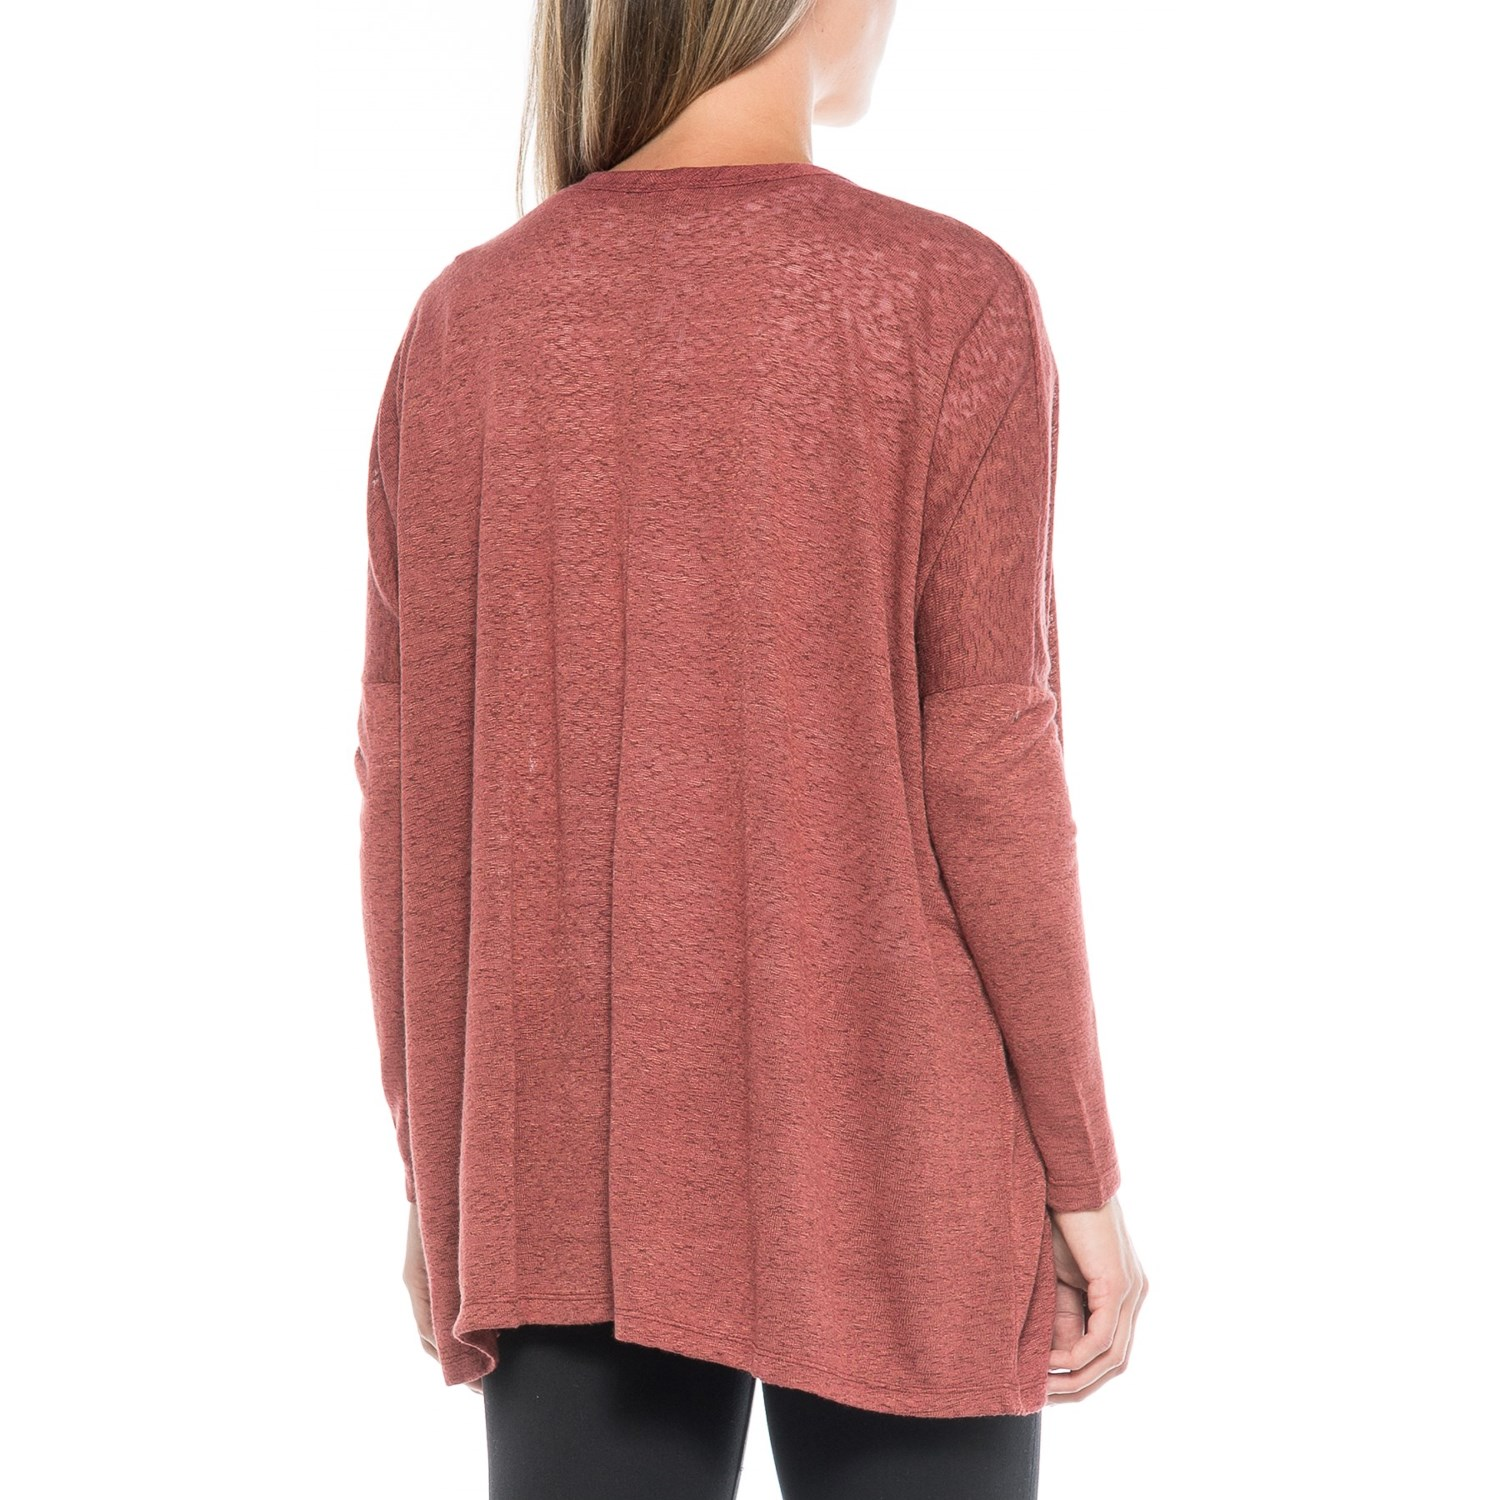 B Collection by Bobeau Rumor Cardigan Sweater (For Women) - Save 59%